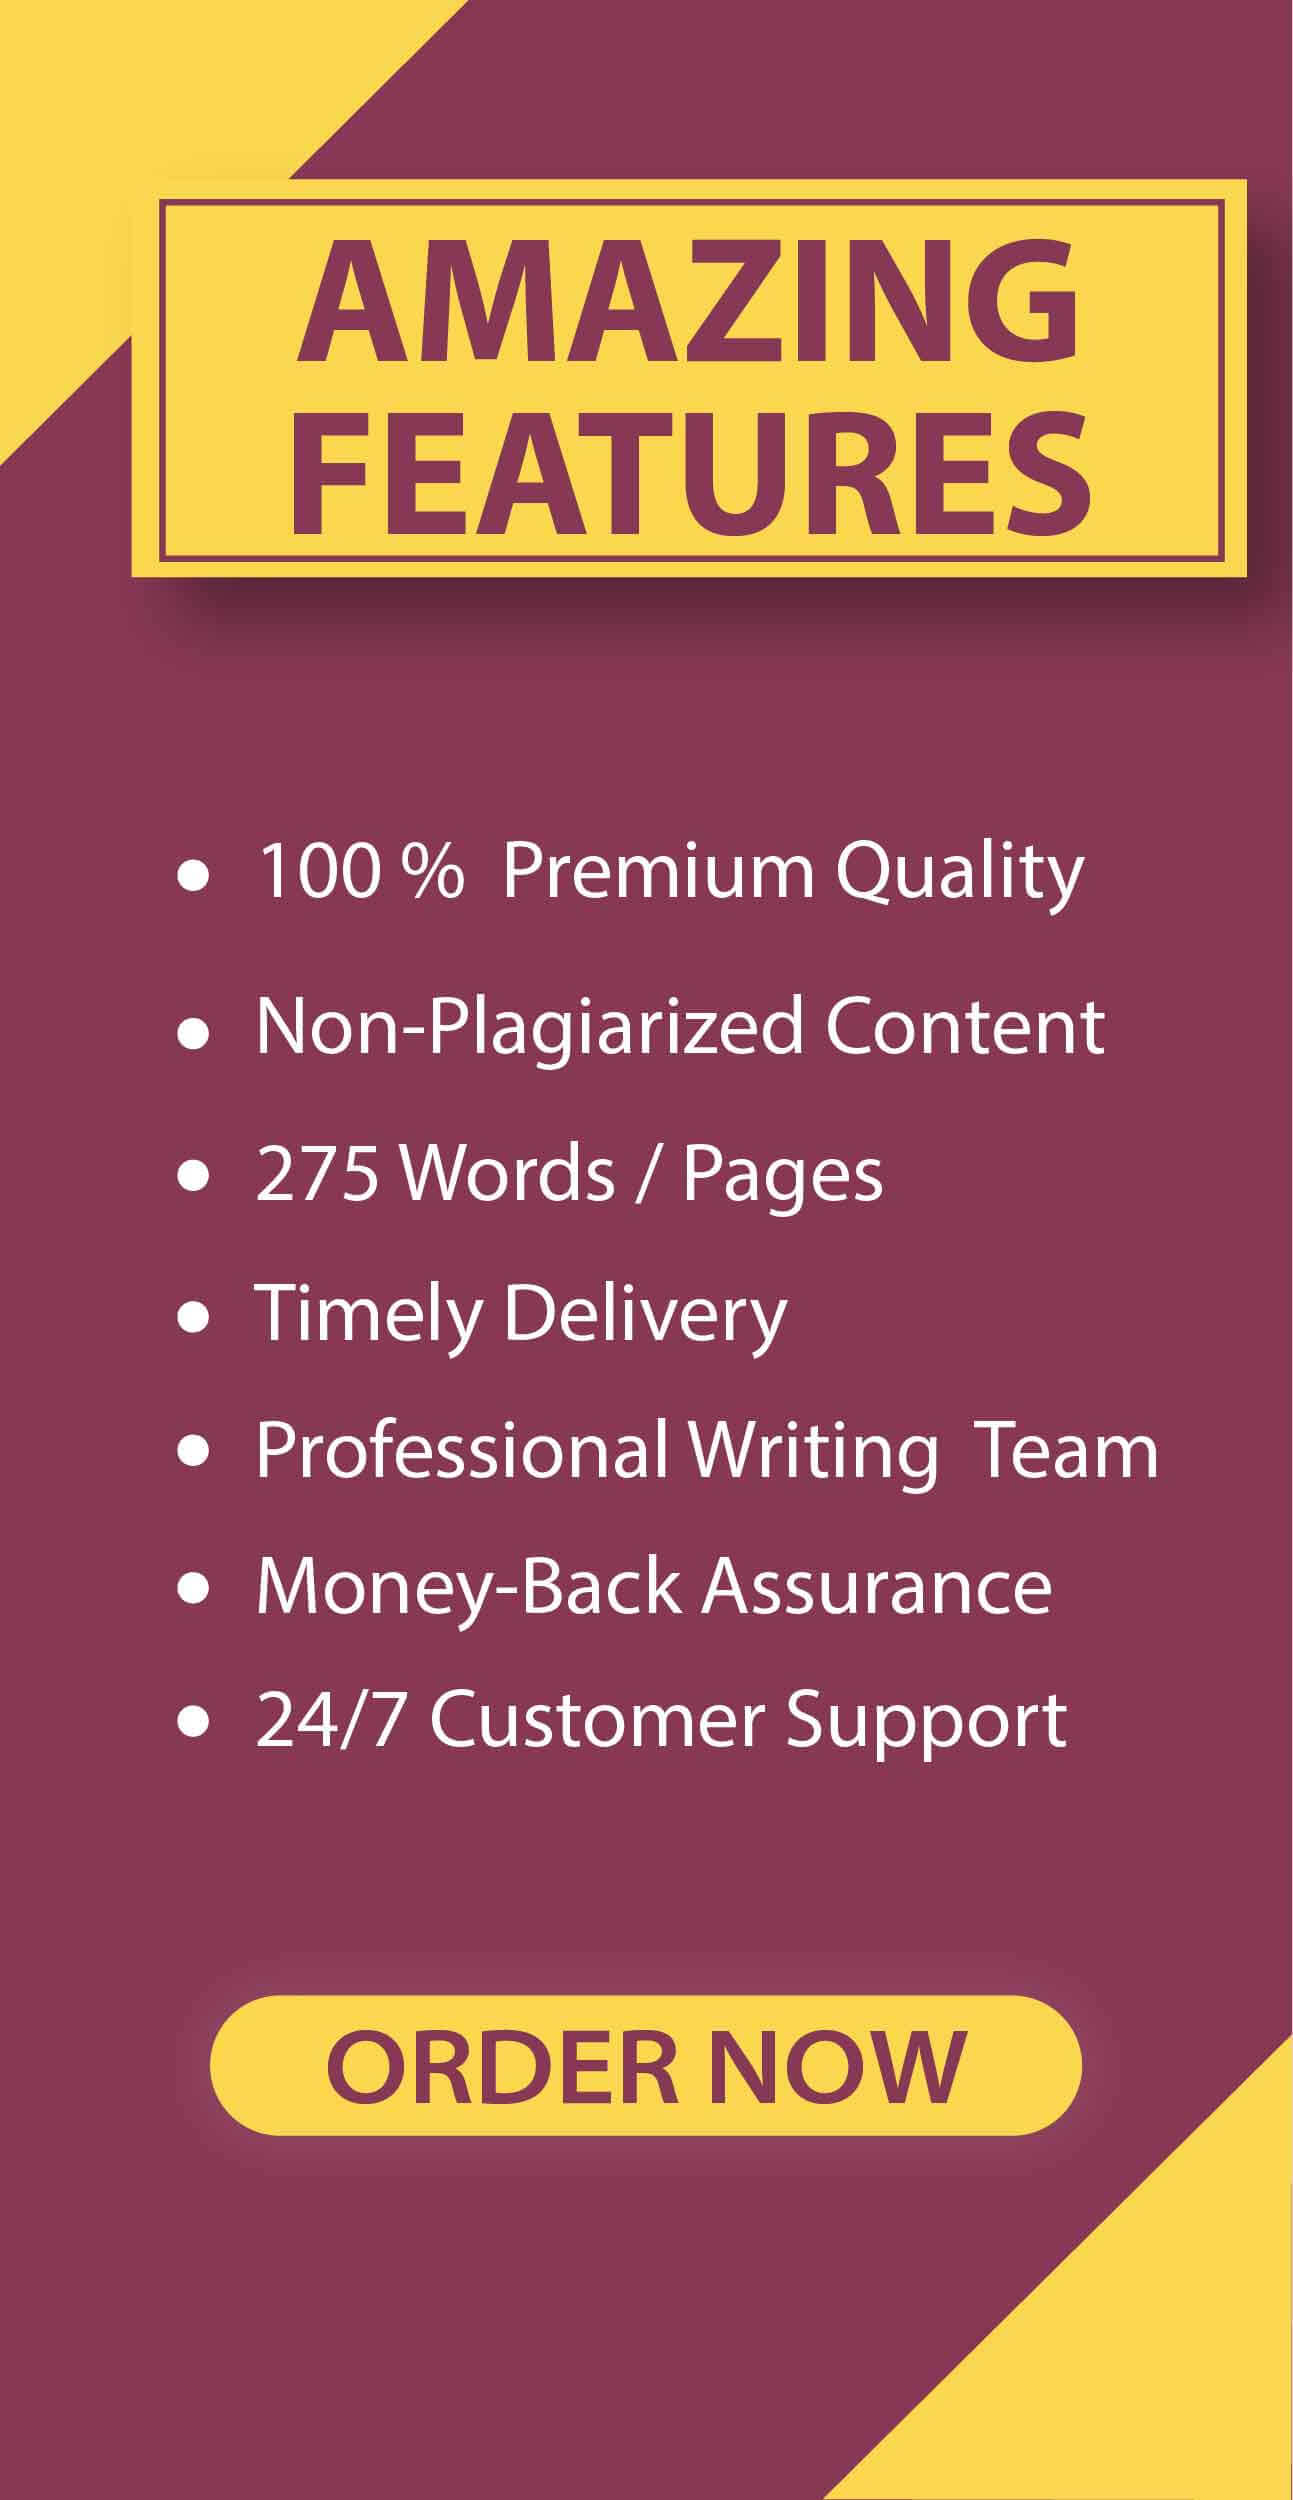 Personal Essay Thesis Statement Thus We Can Say That Our Team Makes Us The Best Website For Essays Hire  Us And Get Ready To Receive The Best Services That You Can Find Online Expository Essay Thesis Statement also Health Essay Example Best Website For Essays  Buy Essay From Qualified Writers Terrorism Essay In English